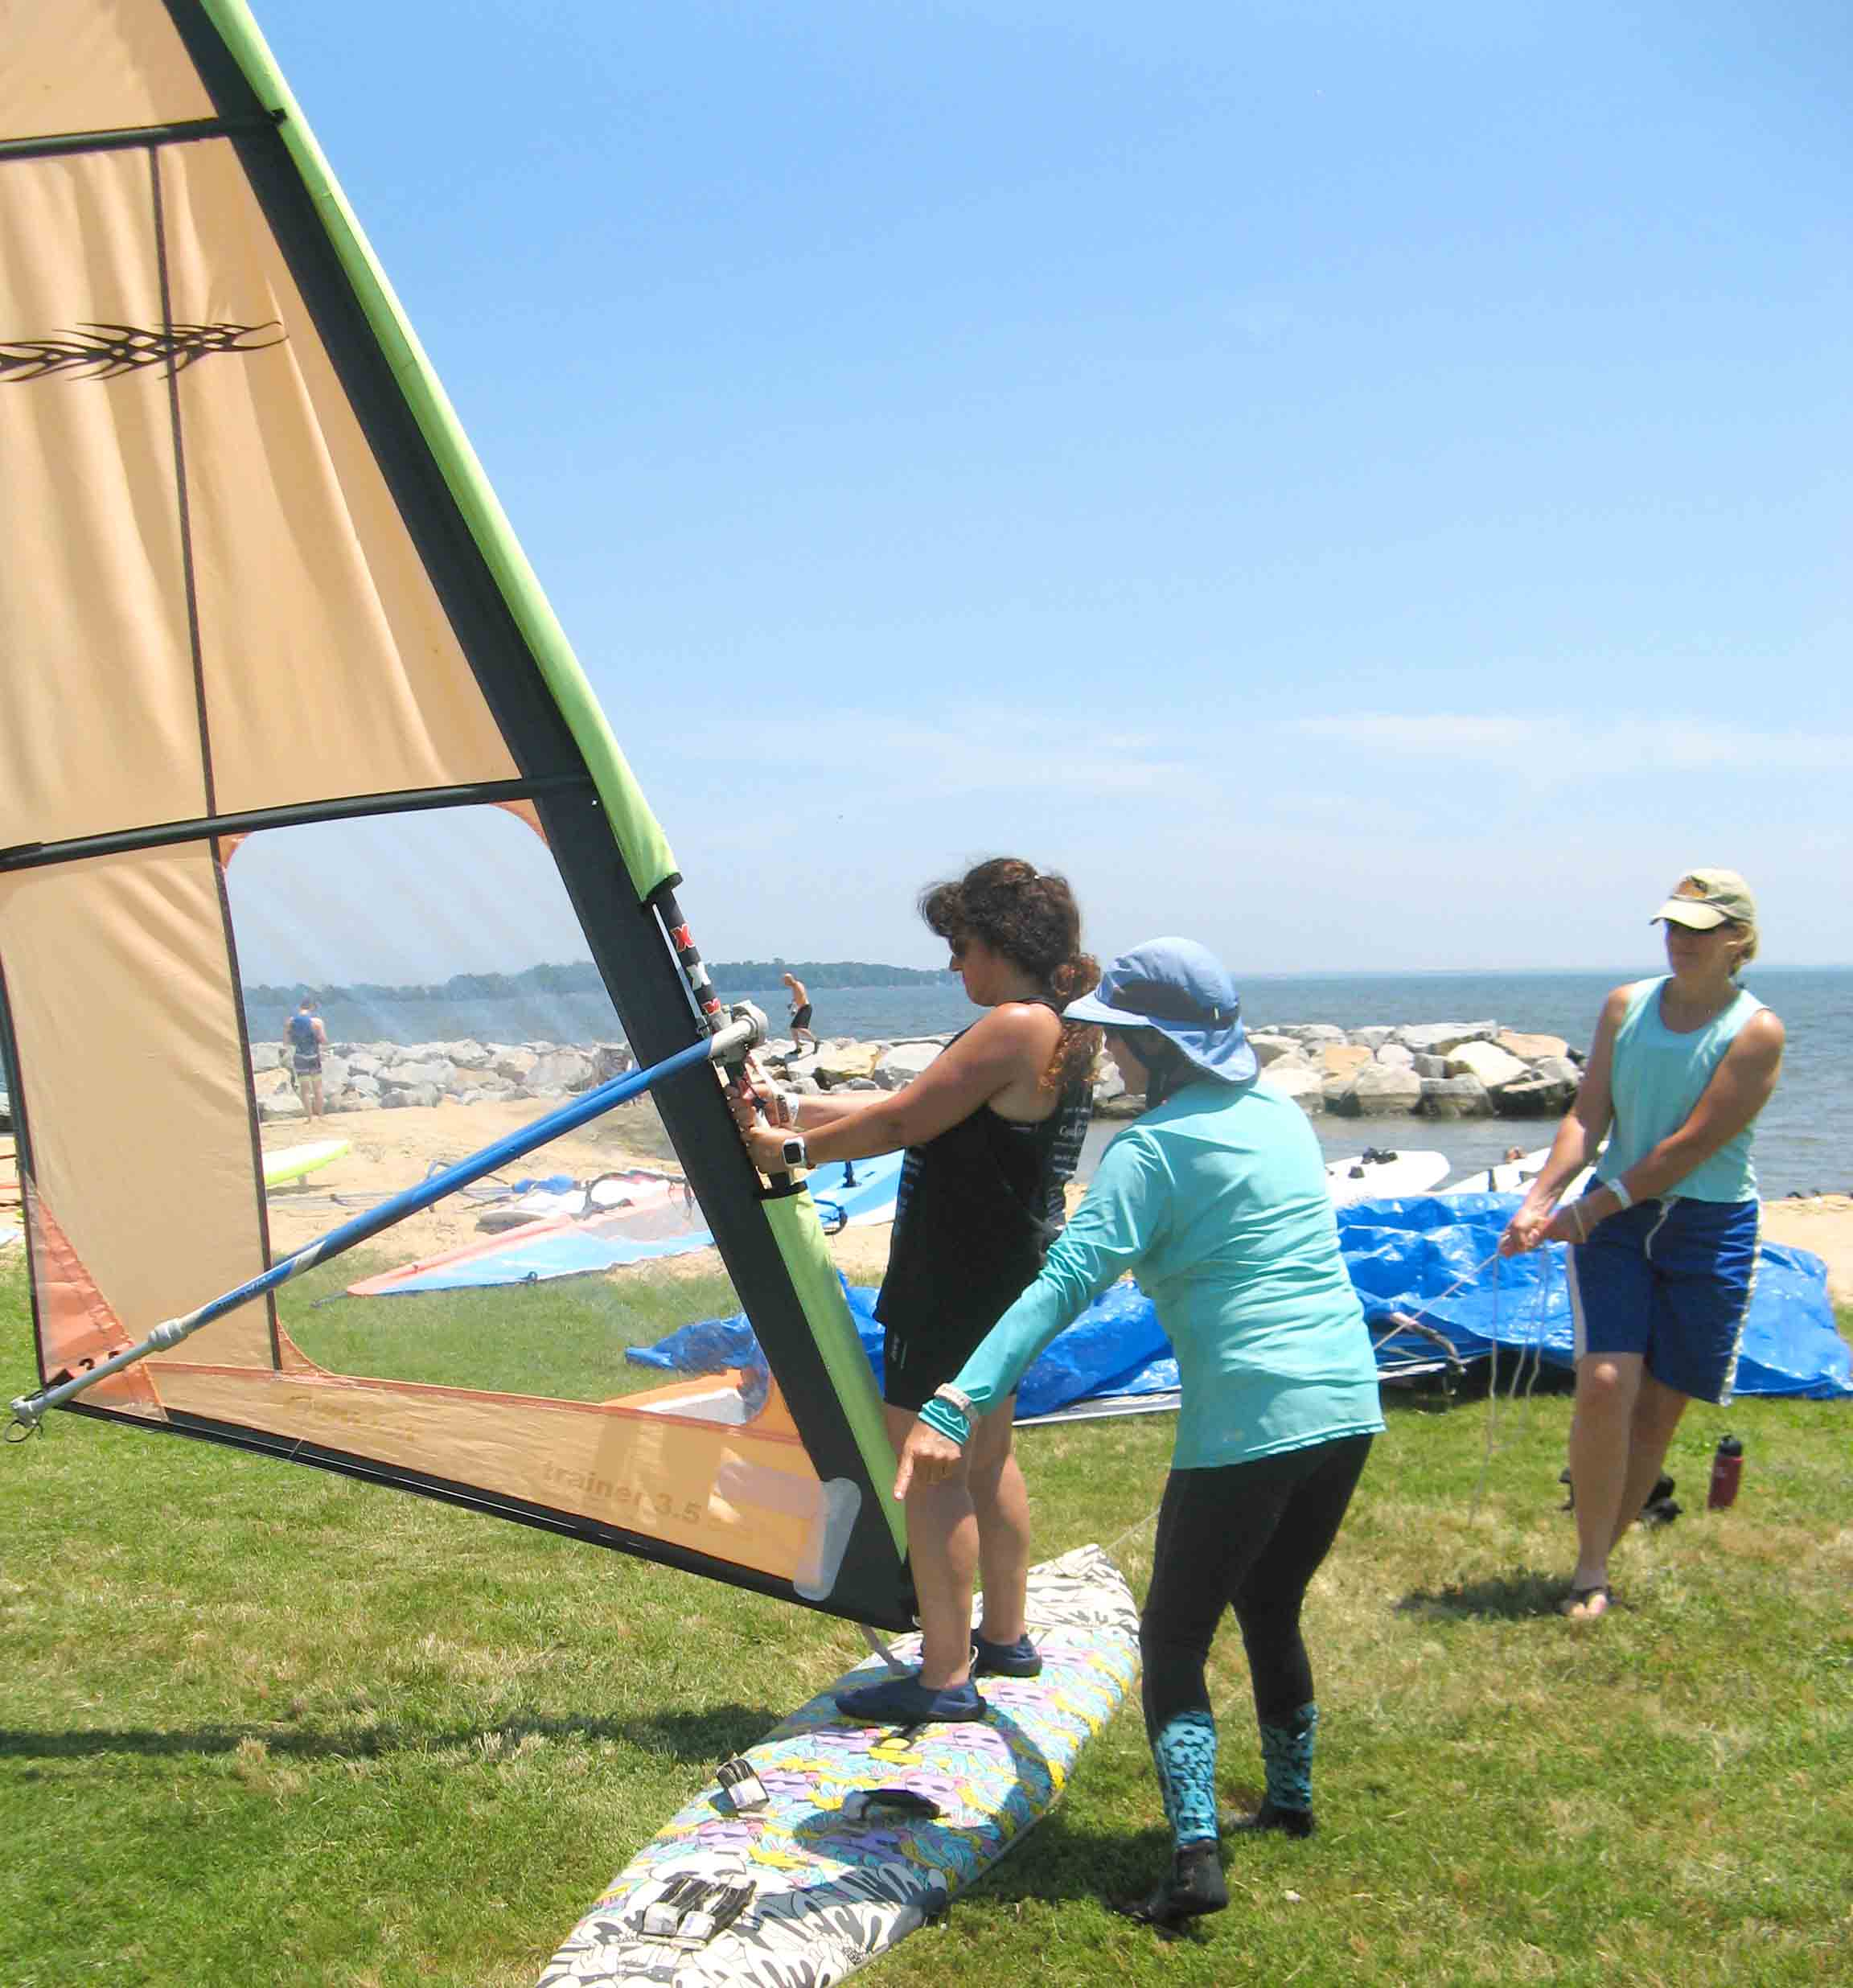 5 Janice and Amber instructig at Learn to windsurf